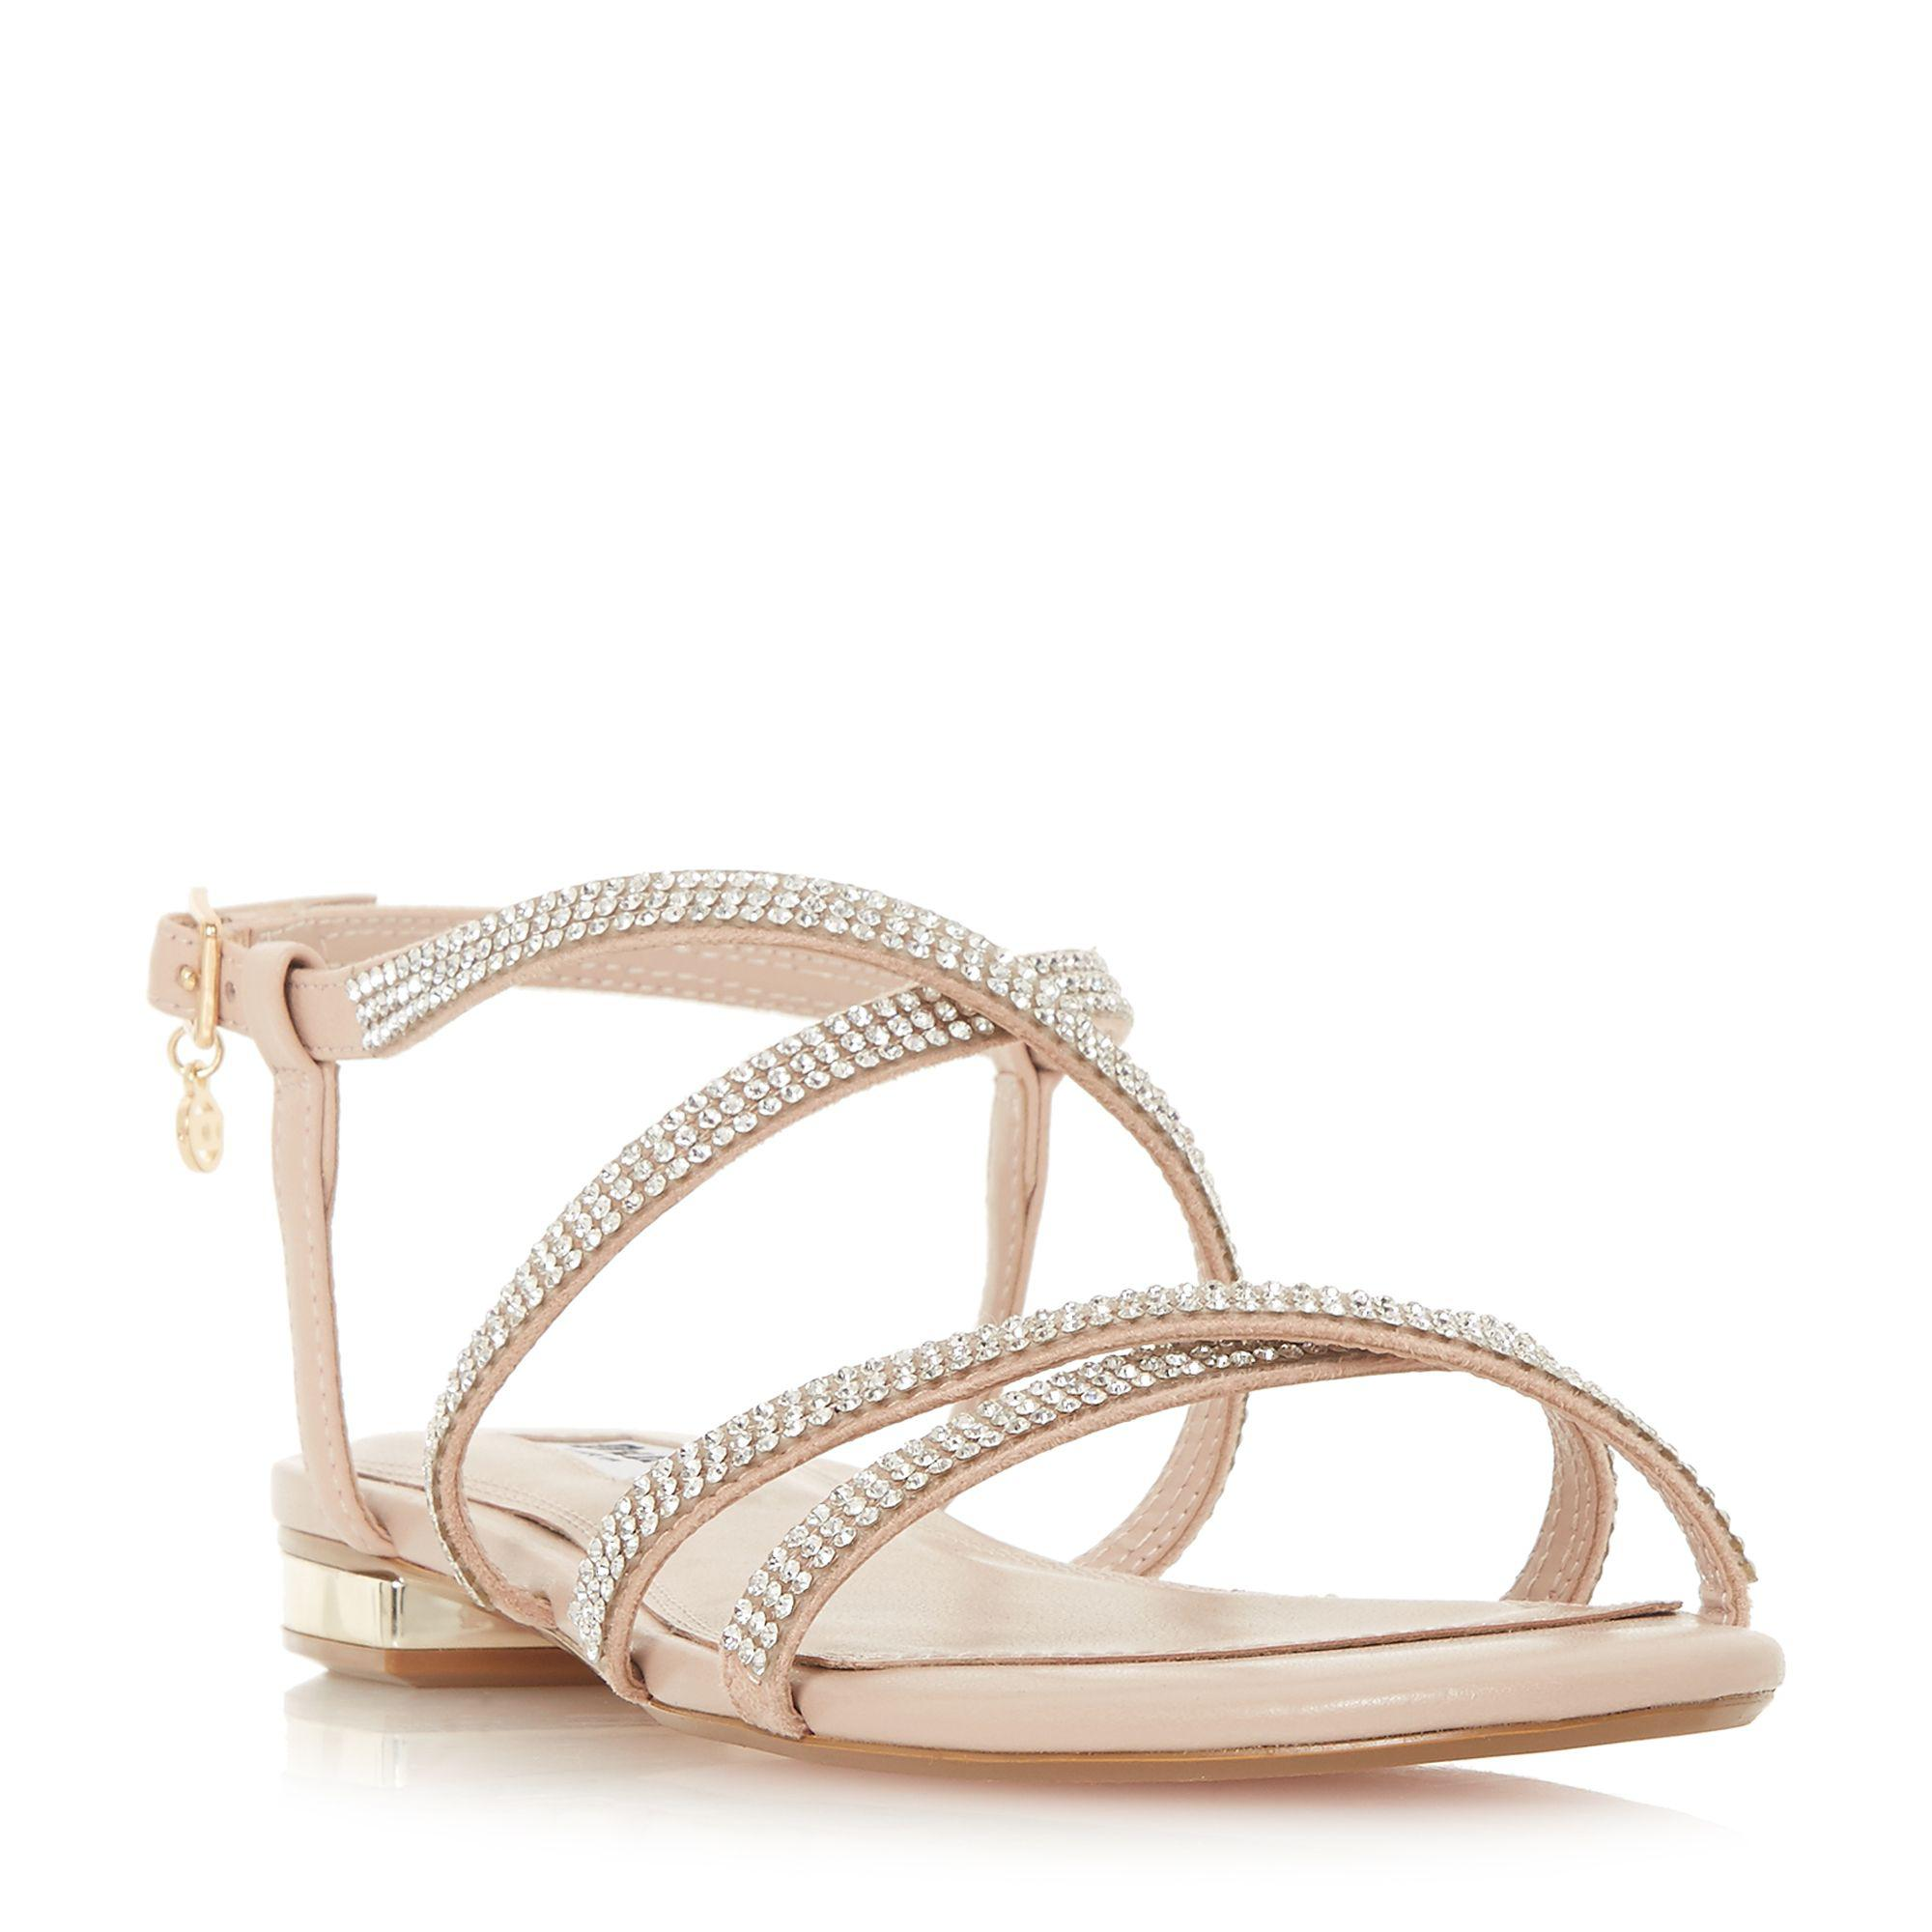 Inexpensive Sale Online Buy Cheap Fast Delivery Dune Women's Neve Open Toe Sandals jkt0RA